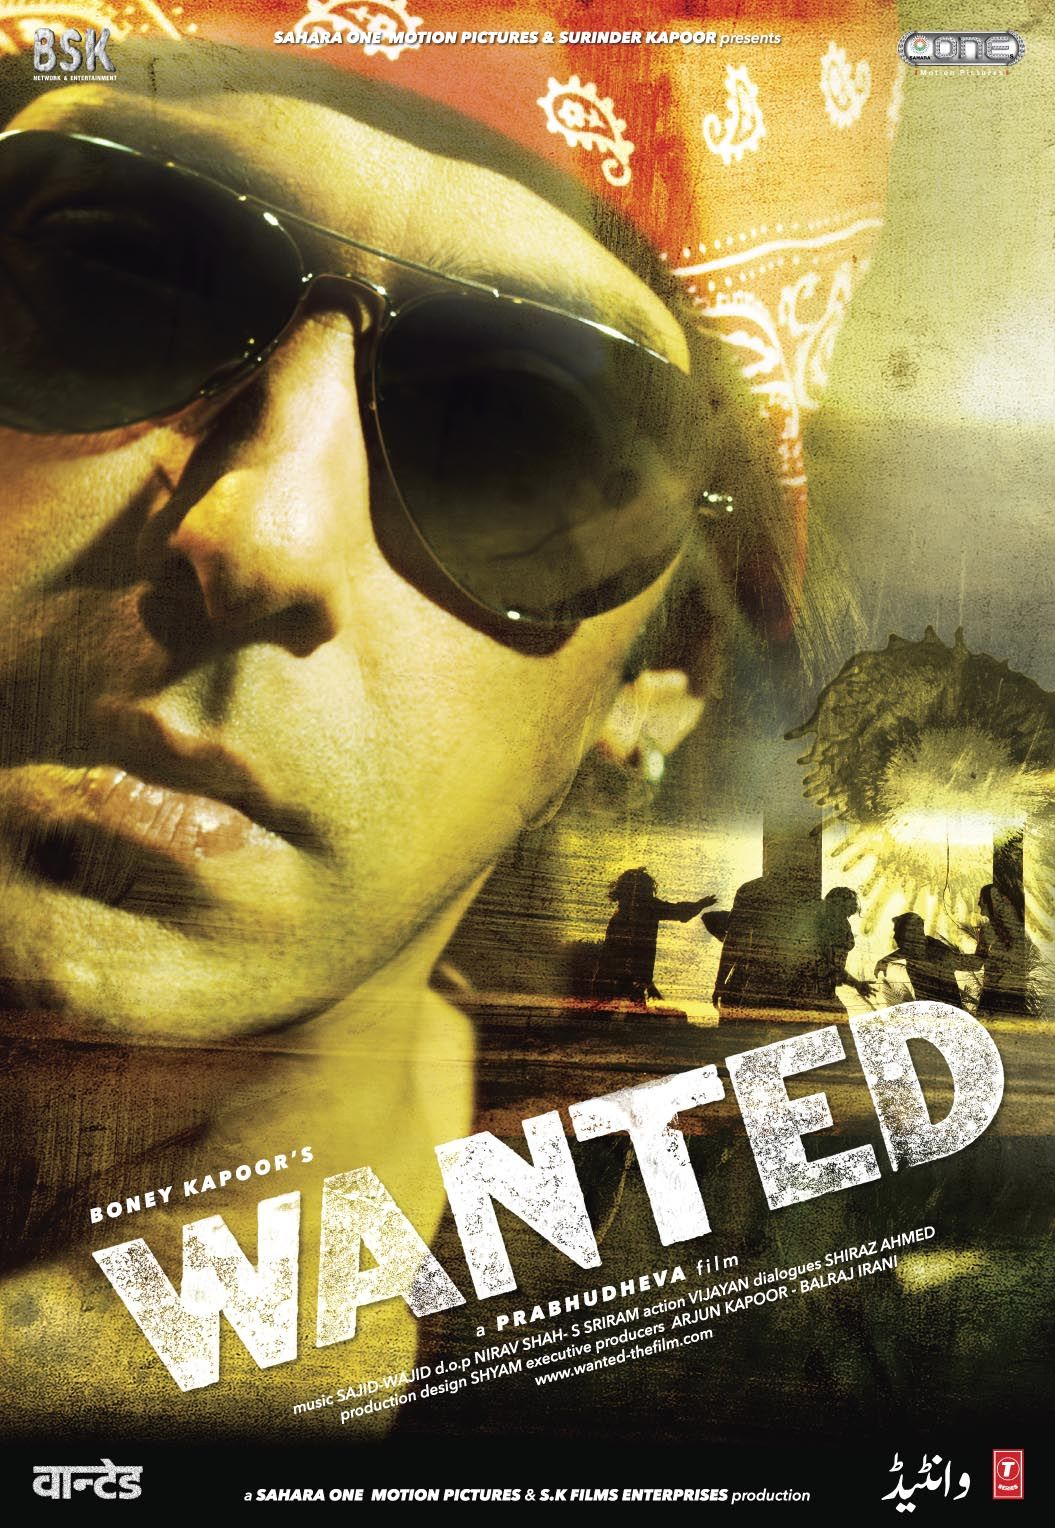 Wanted (2009) 1080p Blu-ray AVC DTS-HD MA 5.1-DrC – [Complete Blu-Ray Disk – 40 GB]